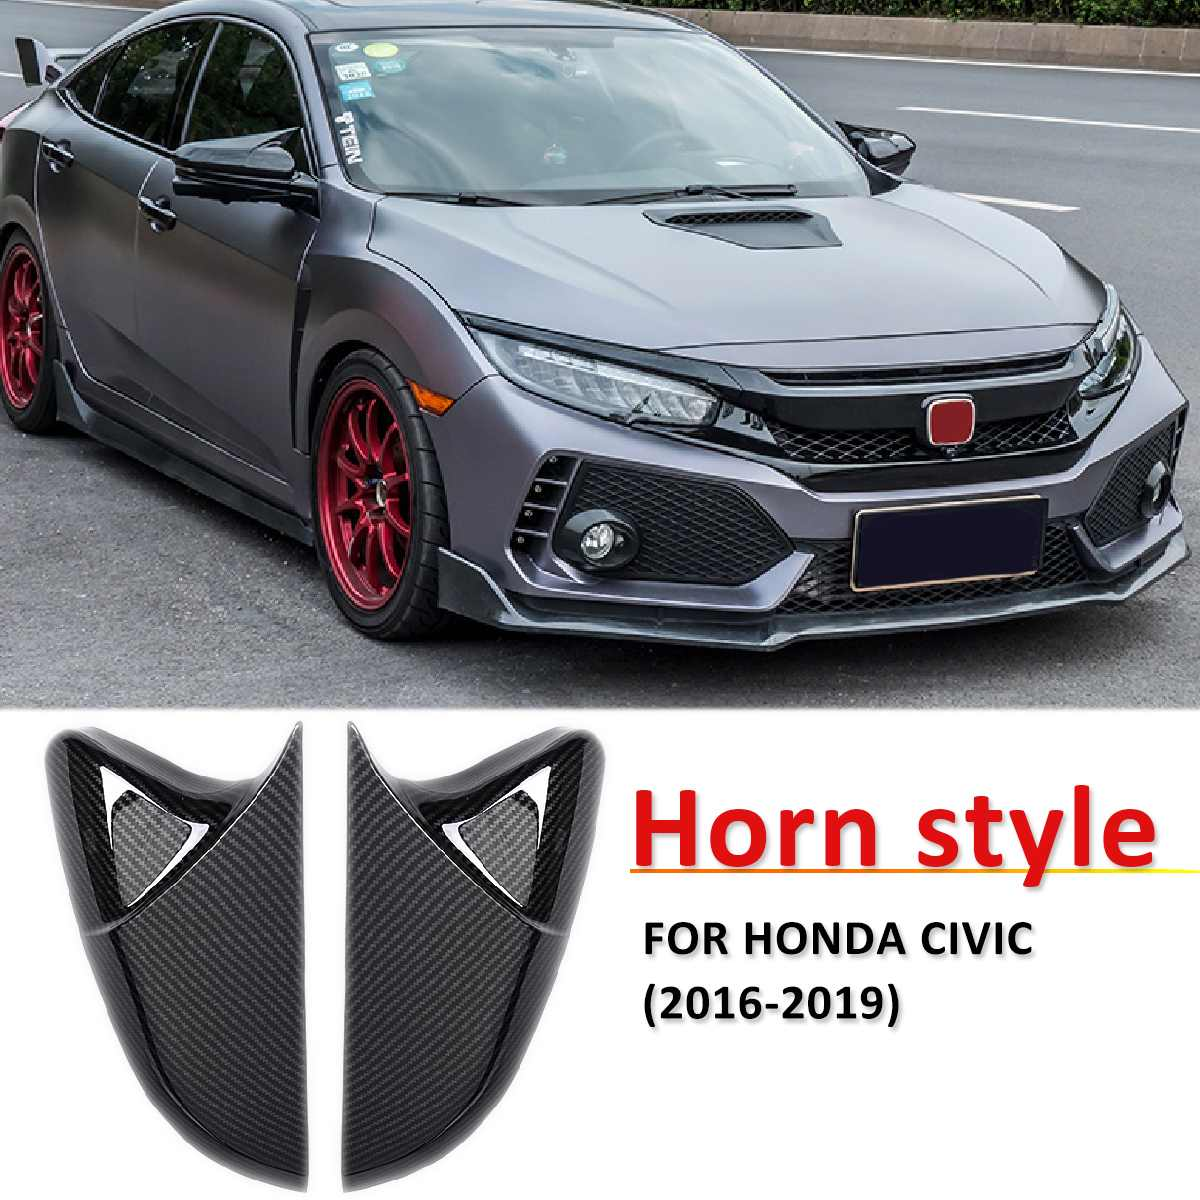 Horn Shape ABS Carbon Fiber Style Rear View Side Mirror Cover Rearview Caps For Honda For Civic 10th 2016 2017 2018